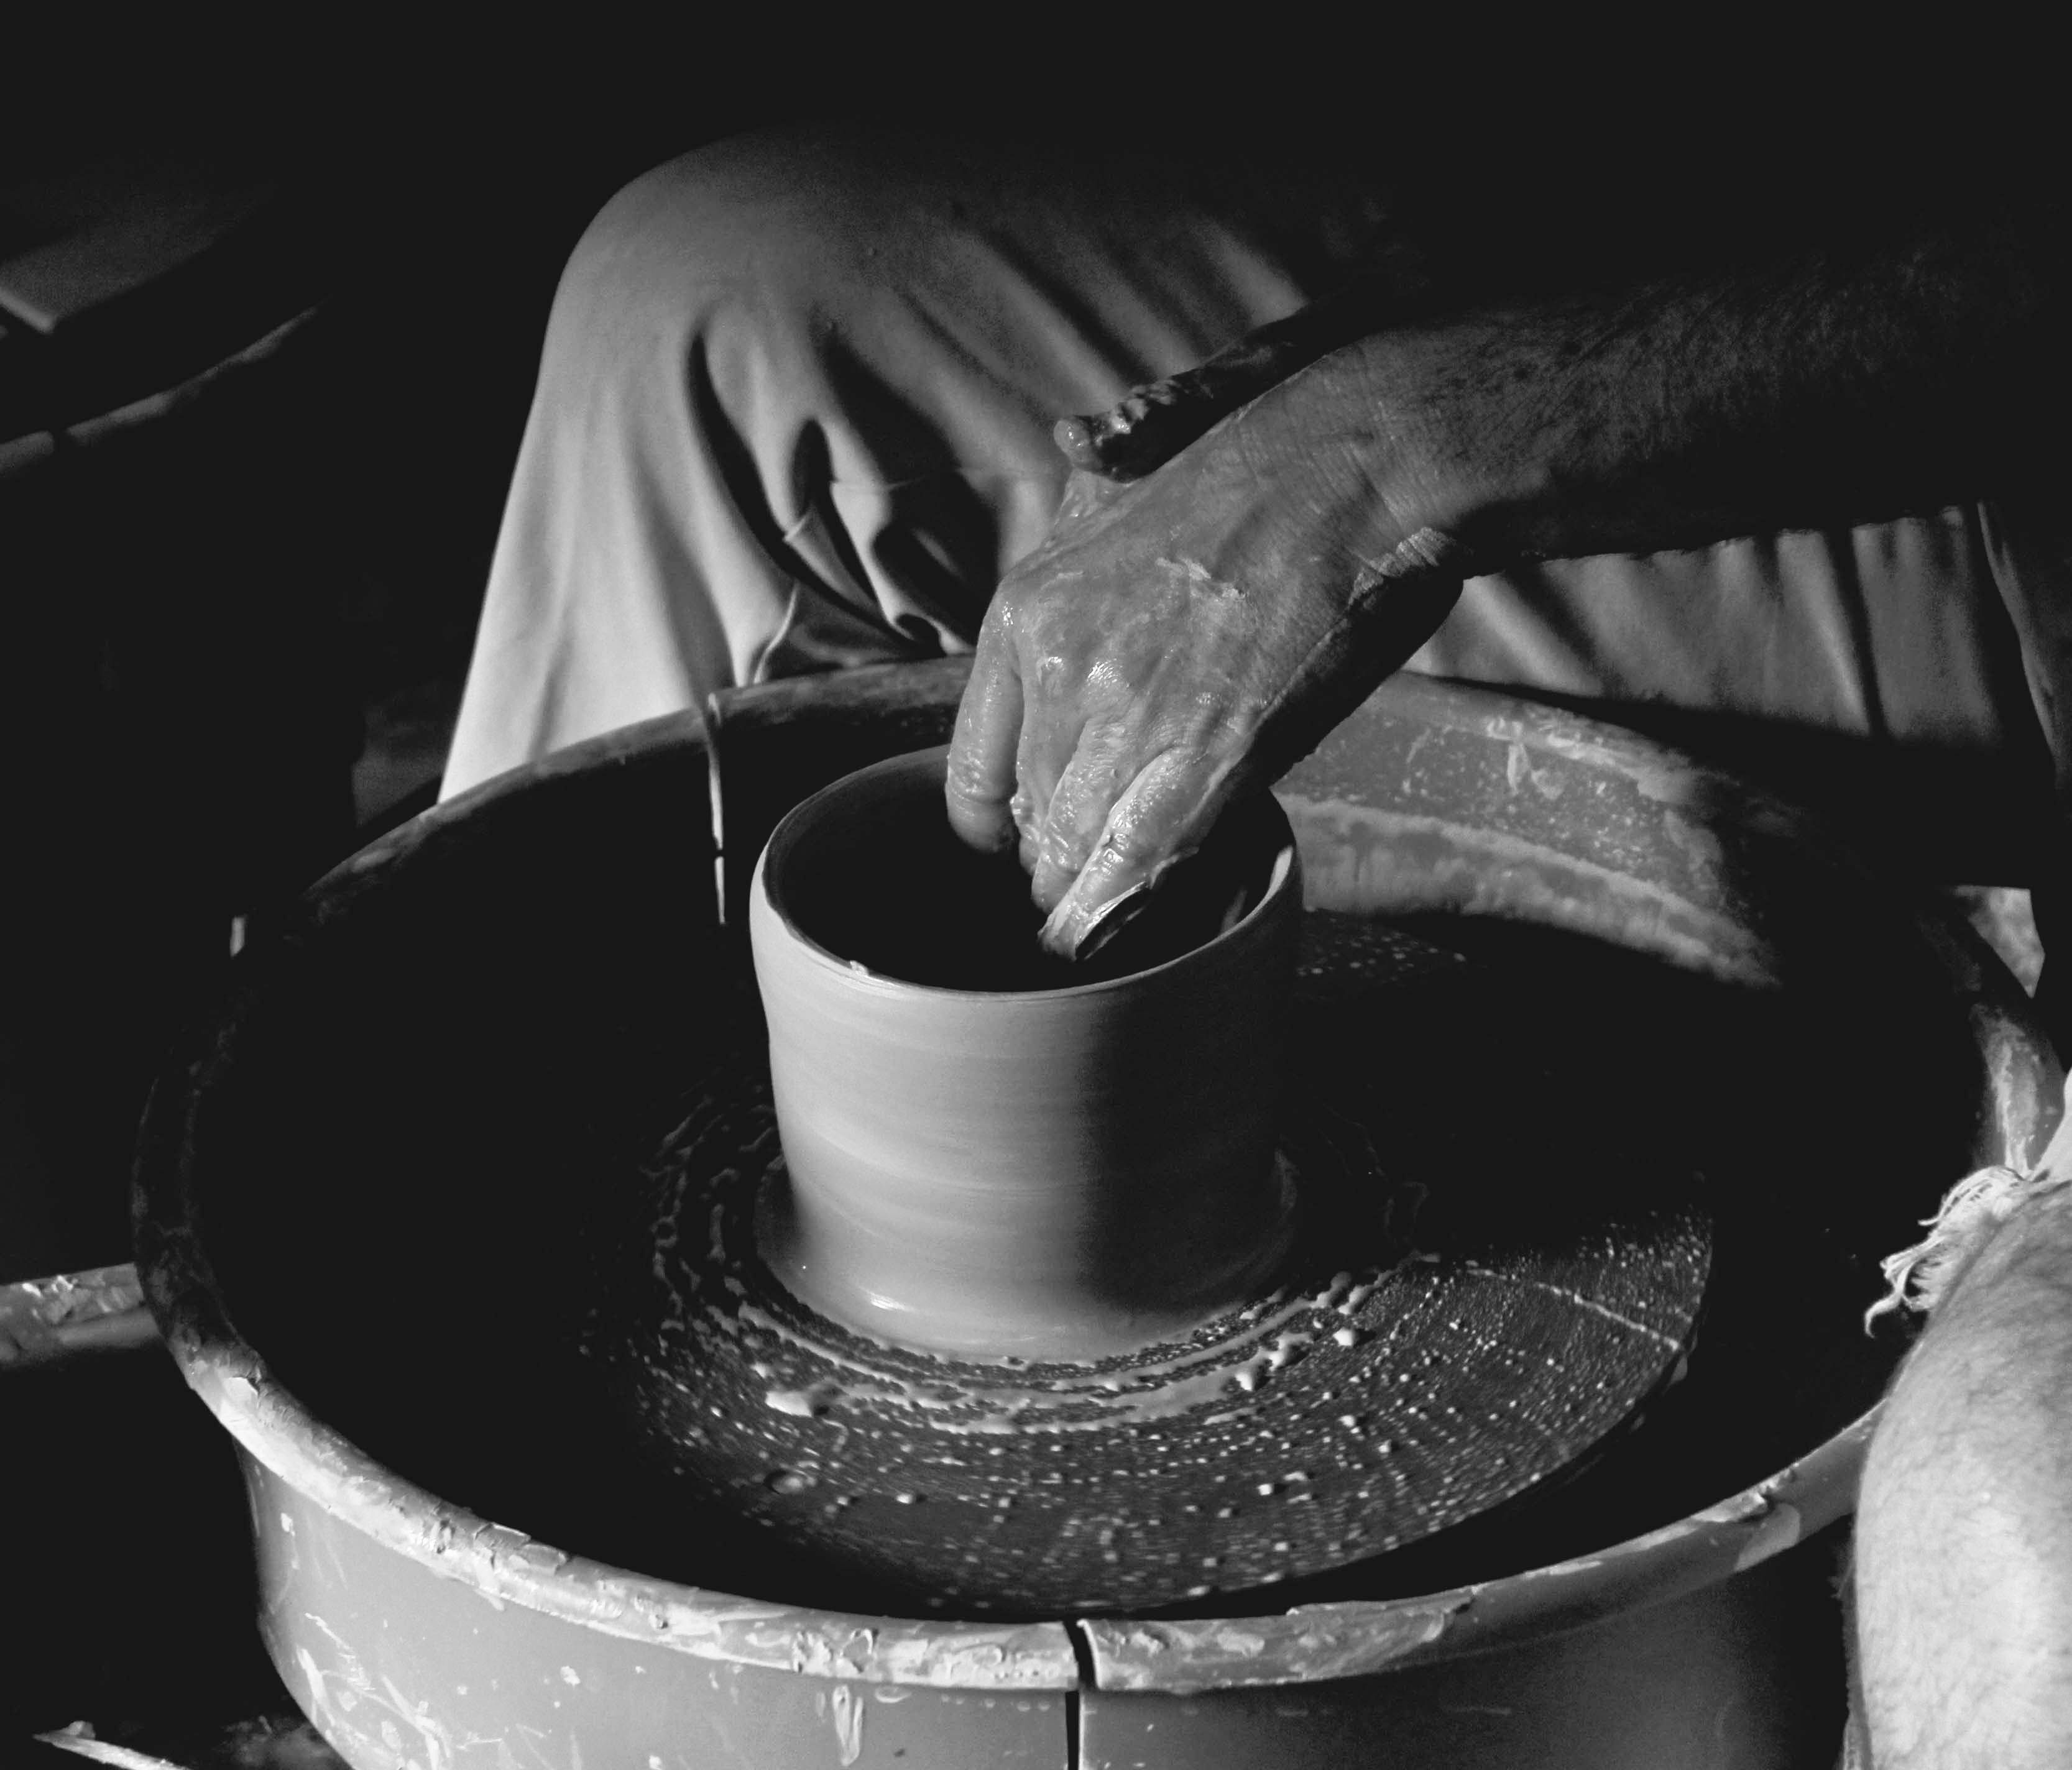 I love digging my hands in clay. And love photographing pottery making even more. Taken at The Clay Lady studio in Nashville by Amber Huston